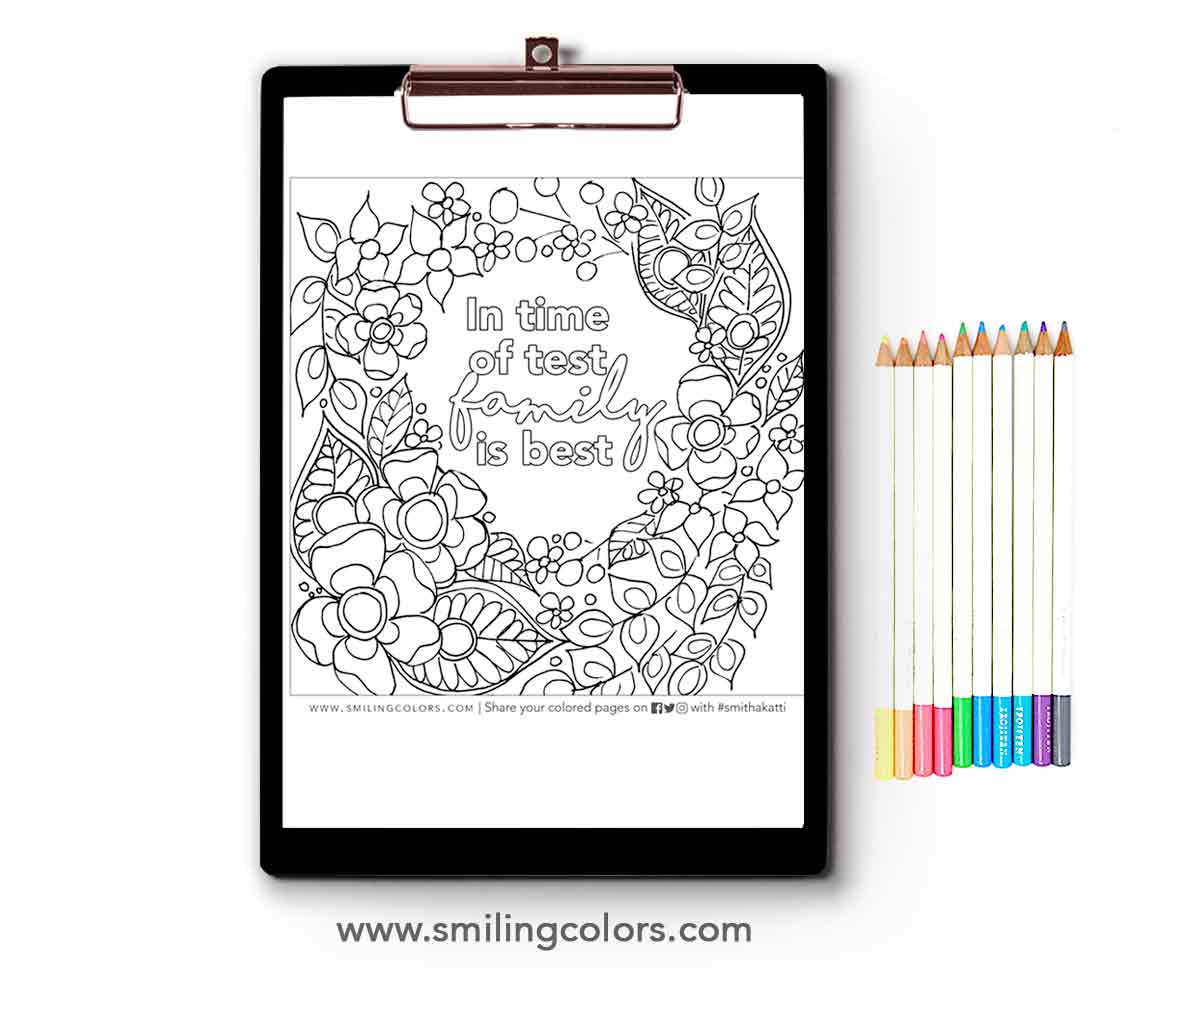 Family Quote Coloring Page: Print It And Enjoy Coloring - Smitha Katti